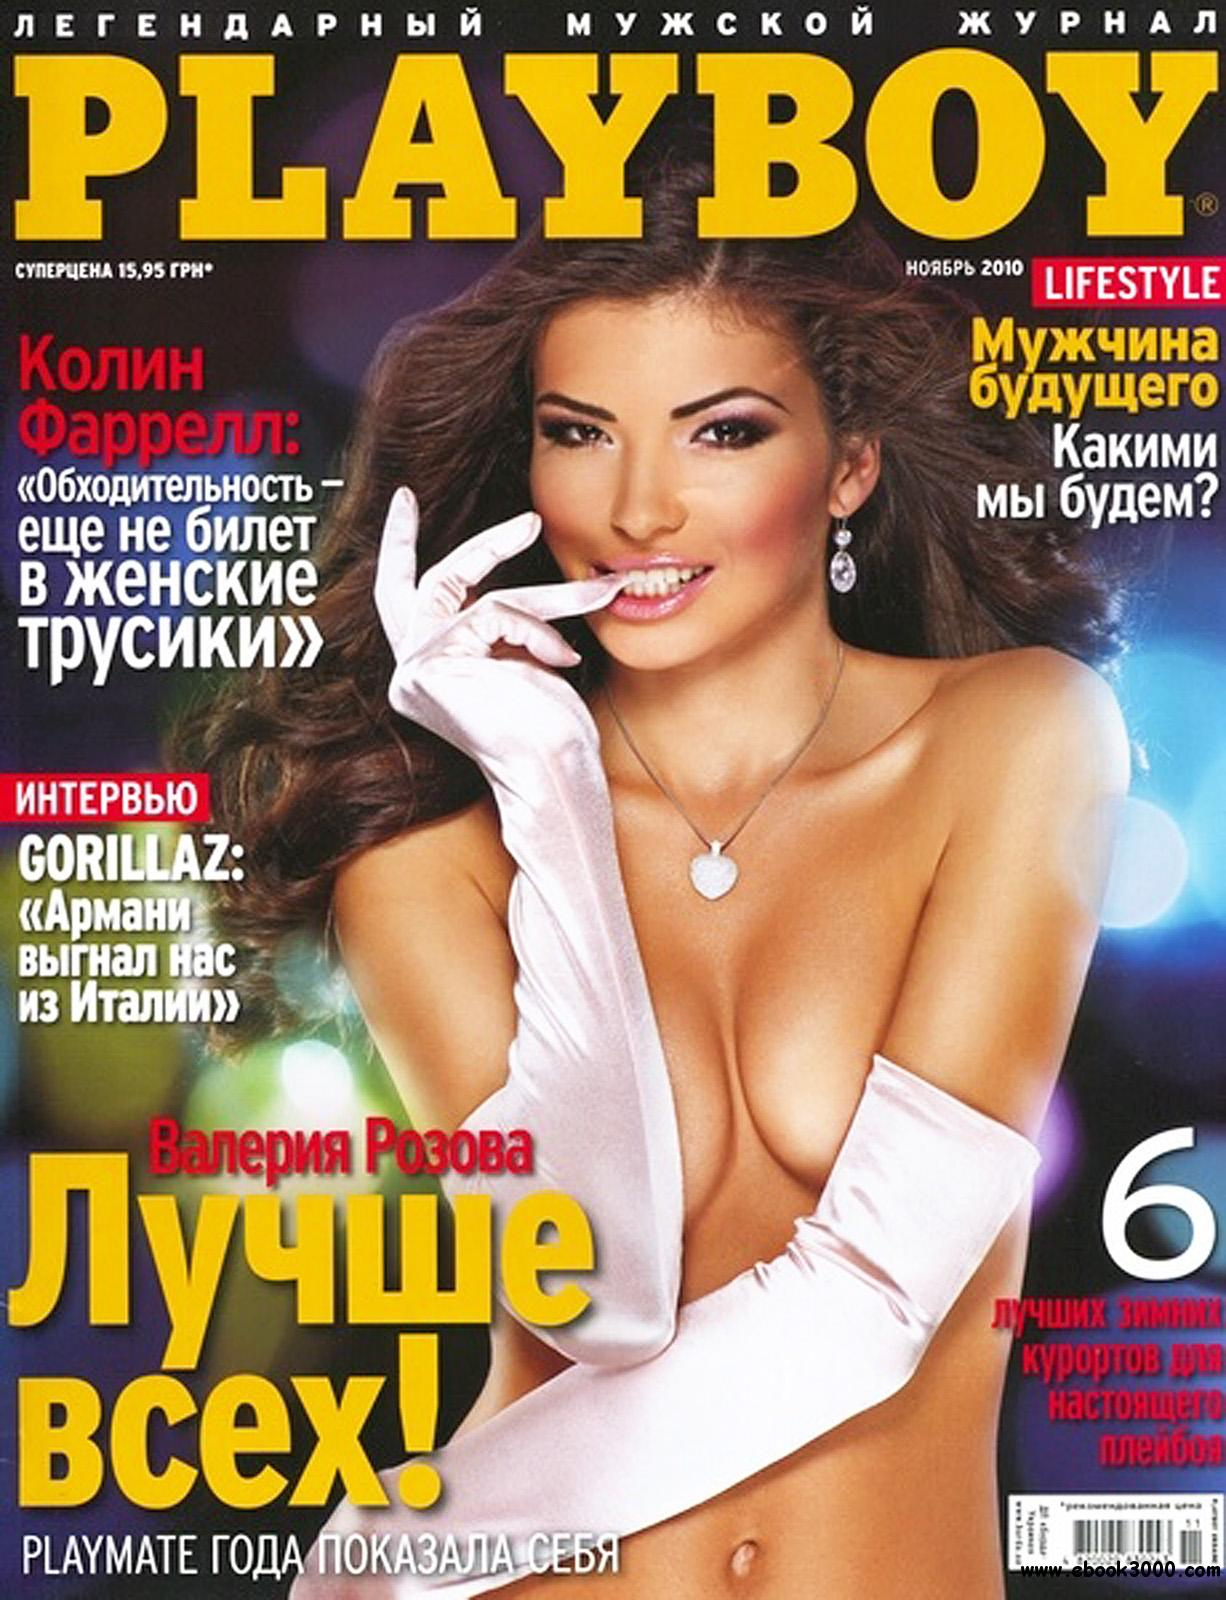 Playboy Ukraine - November 2010 free download